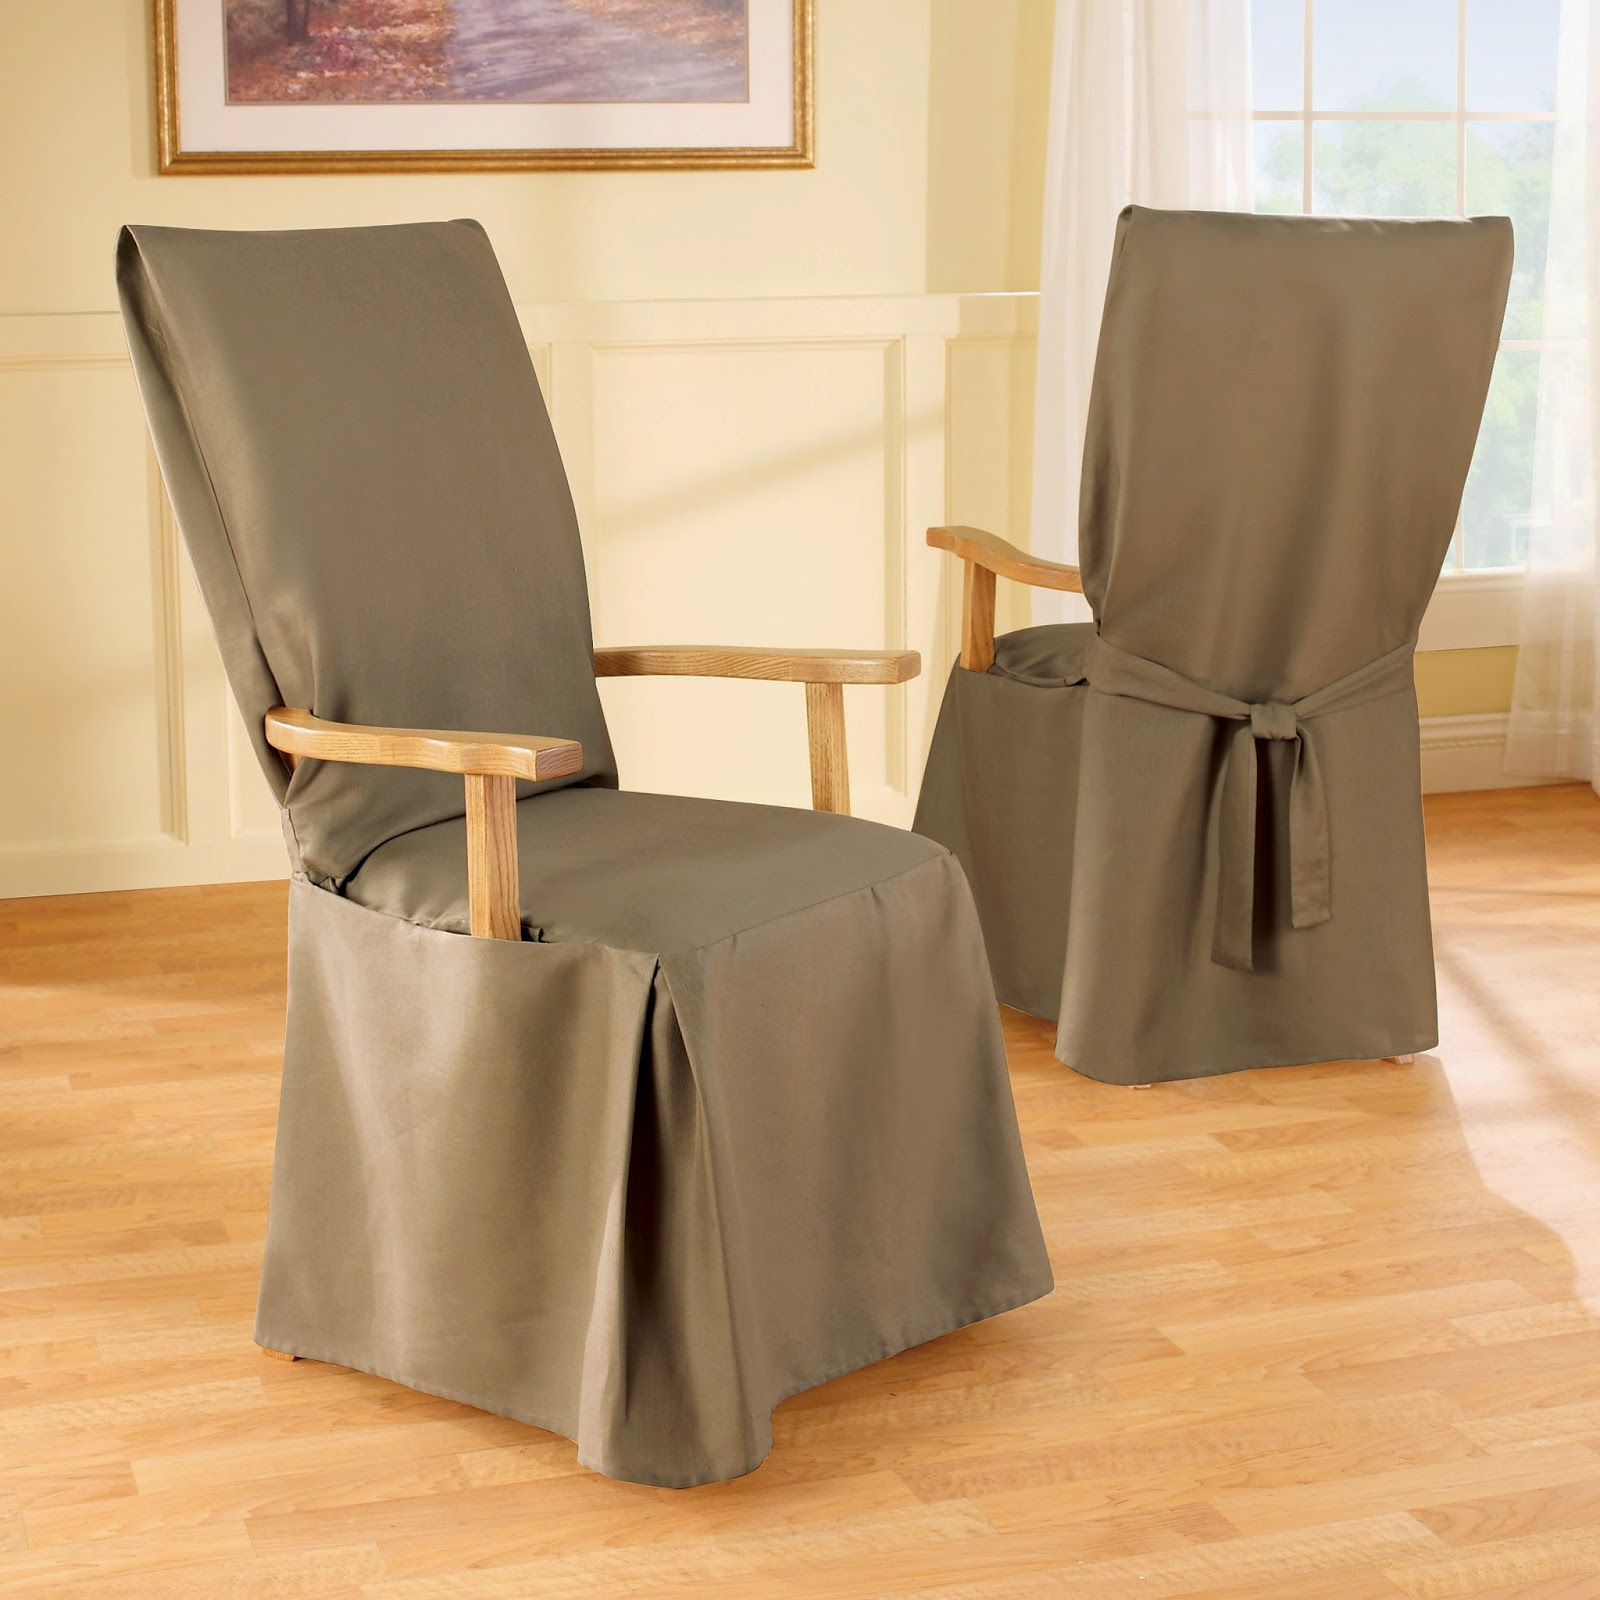 dining room chair covers with arms instant knowledge how to beautify your home with dining room chair covers